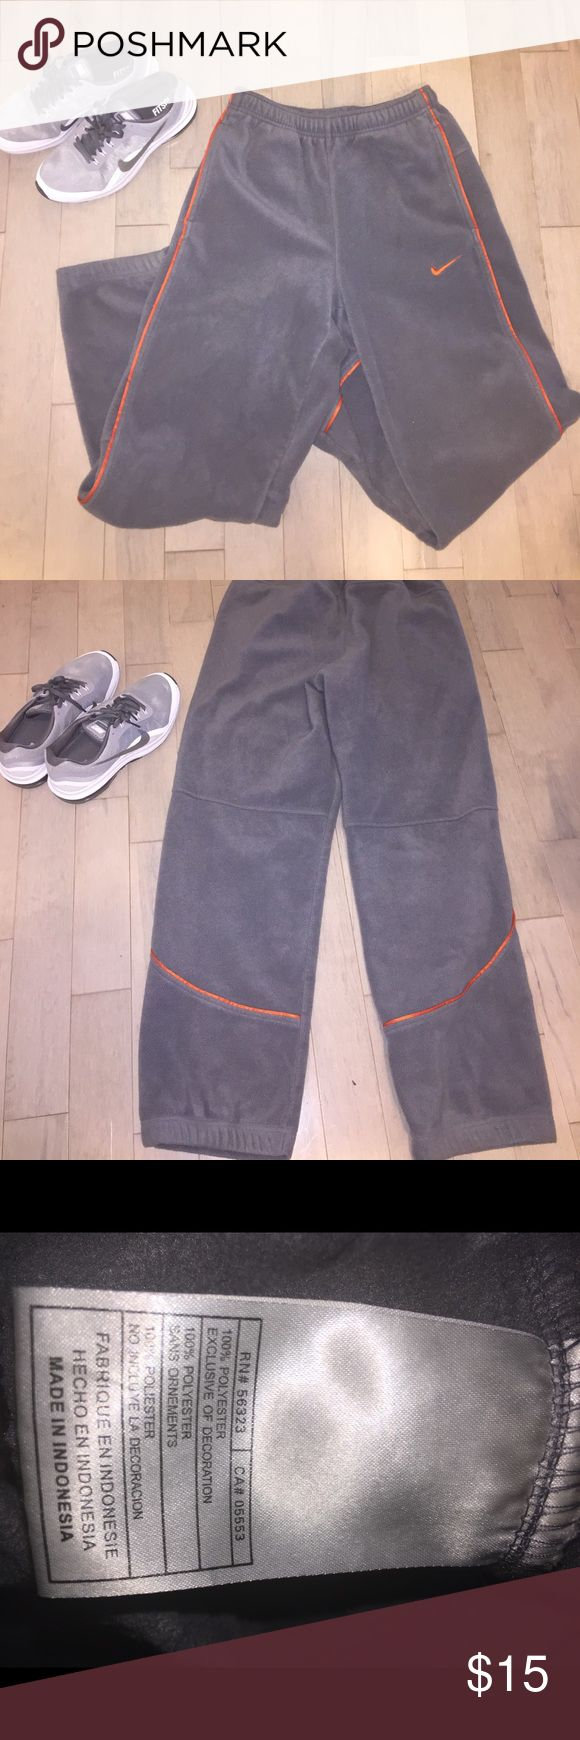 Men's Nike fleece pants size small Nice warm up pants to throw over shorts on the way to the gym or comfy to just wear. In good shape. Has an inside draw string to tie around the waist. Nike Pants Sweatpants & Joggers